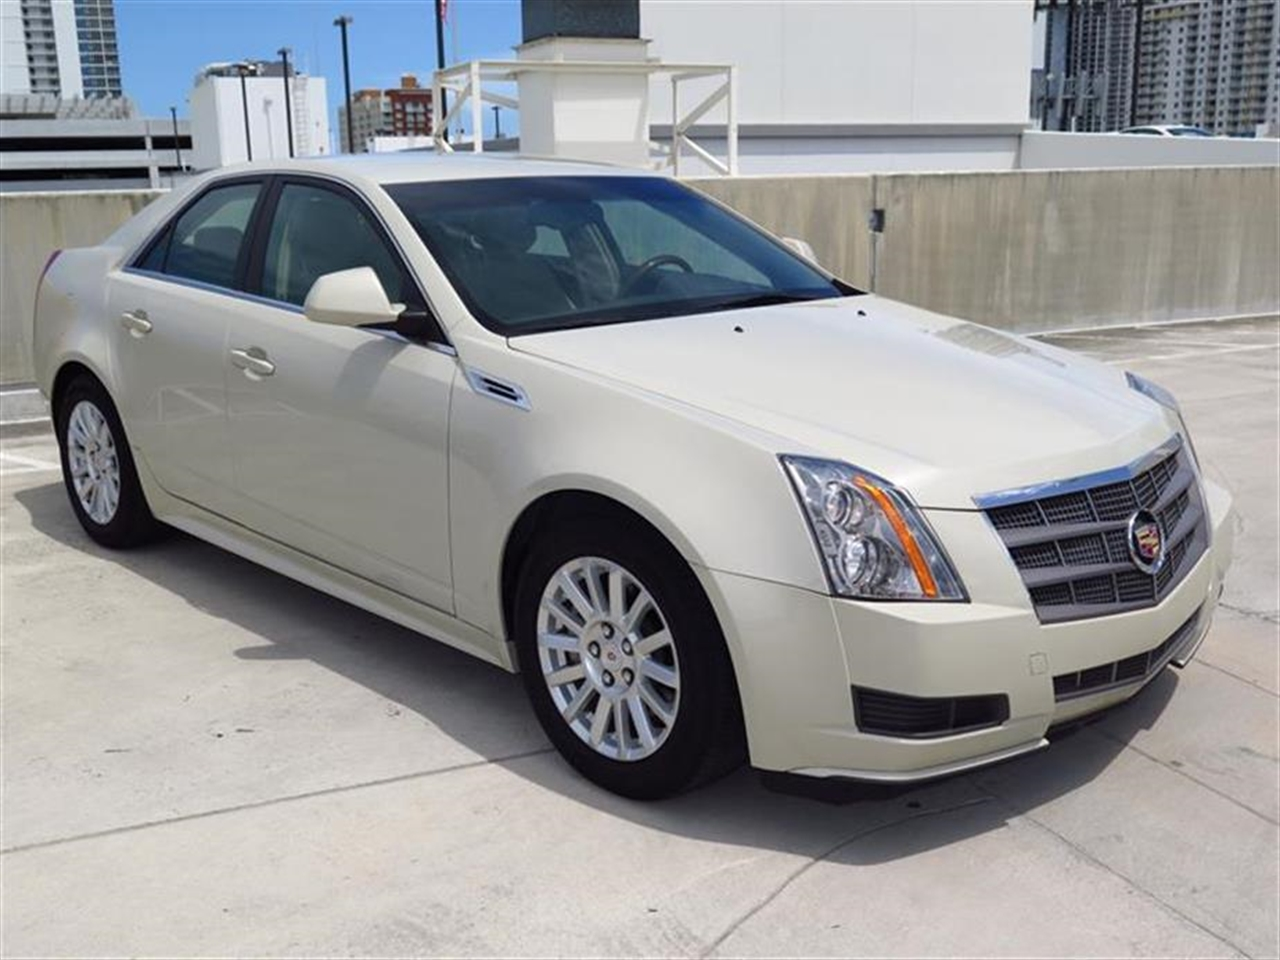 2010 CADILLAC CTS 4dr Sdn 30L Luxury RWD 22320 miles Armrest front center rear center with dual